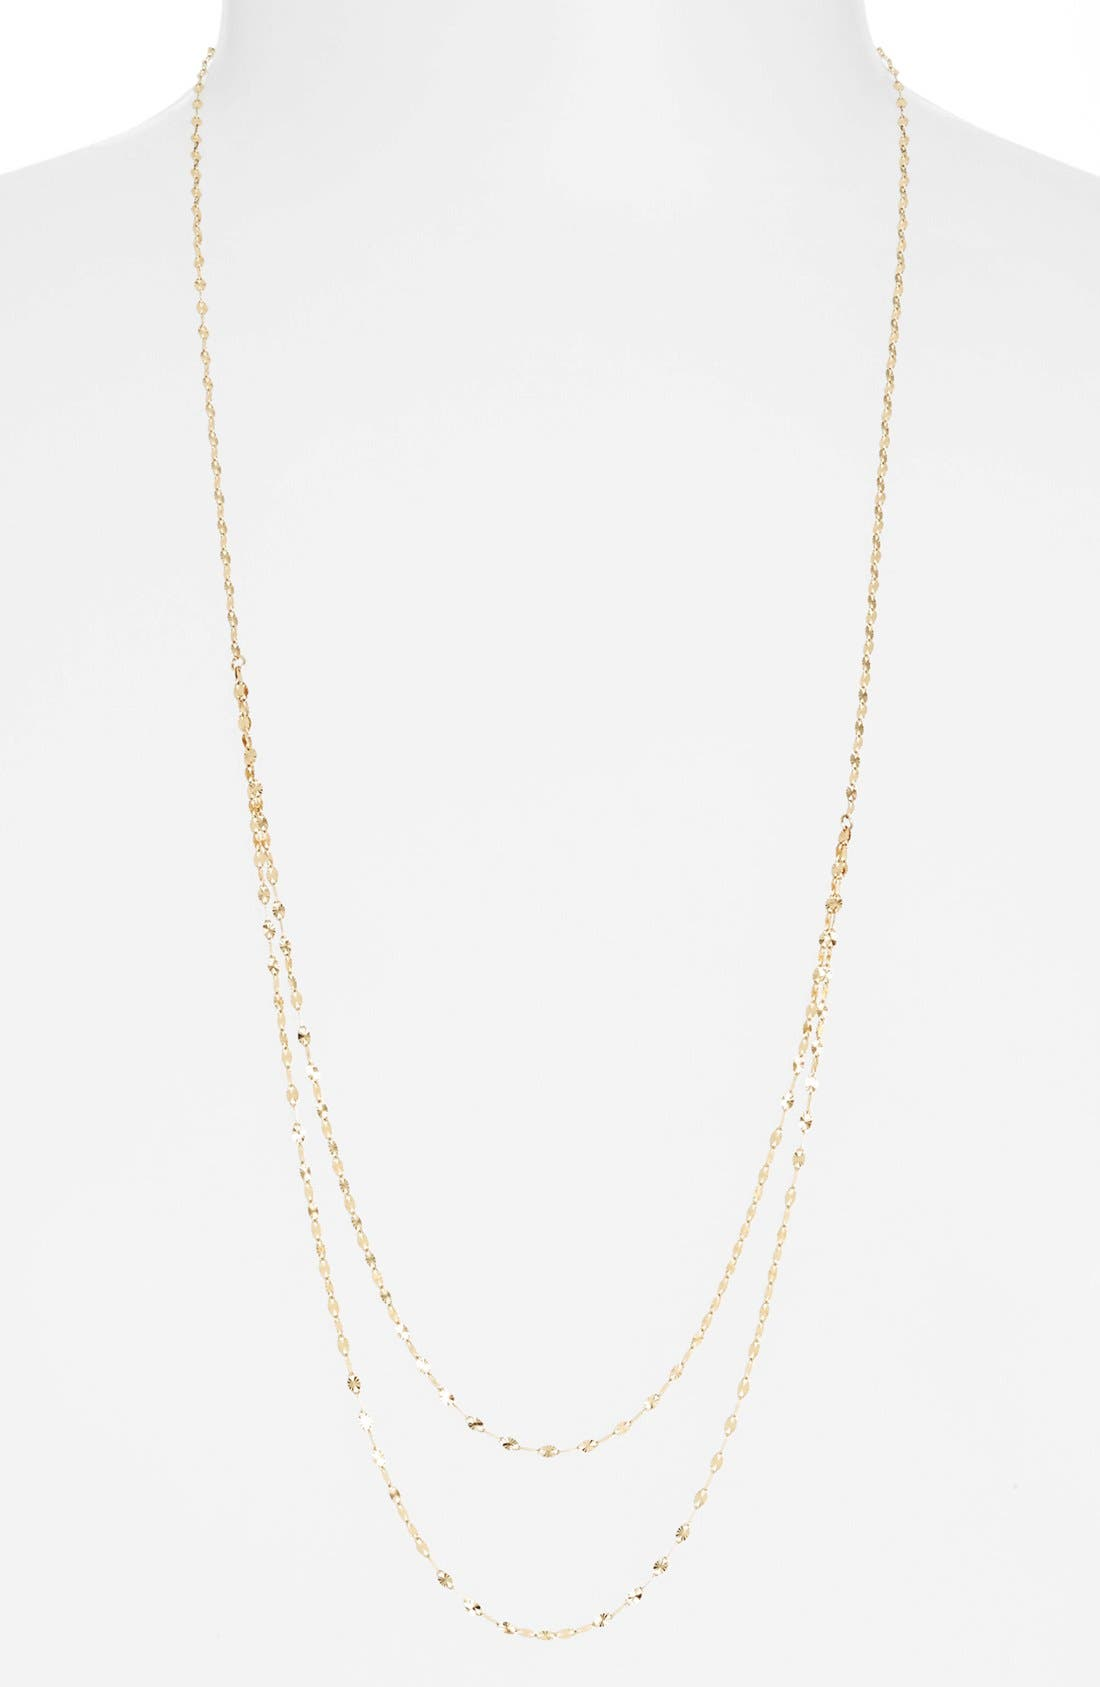 Alternate Image 1 Selected - Lana Jewelry 'Blush' Tiered Link Necklace